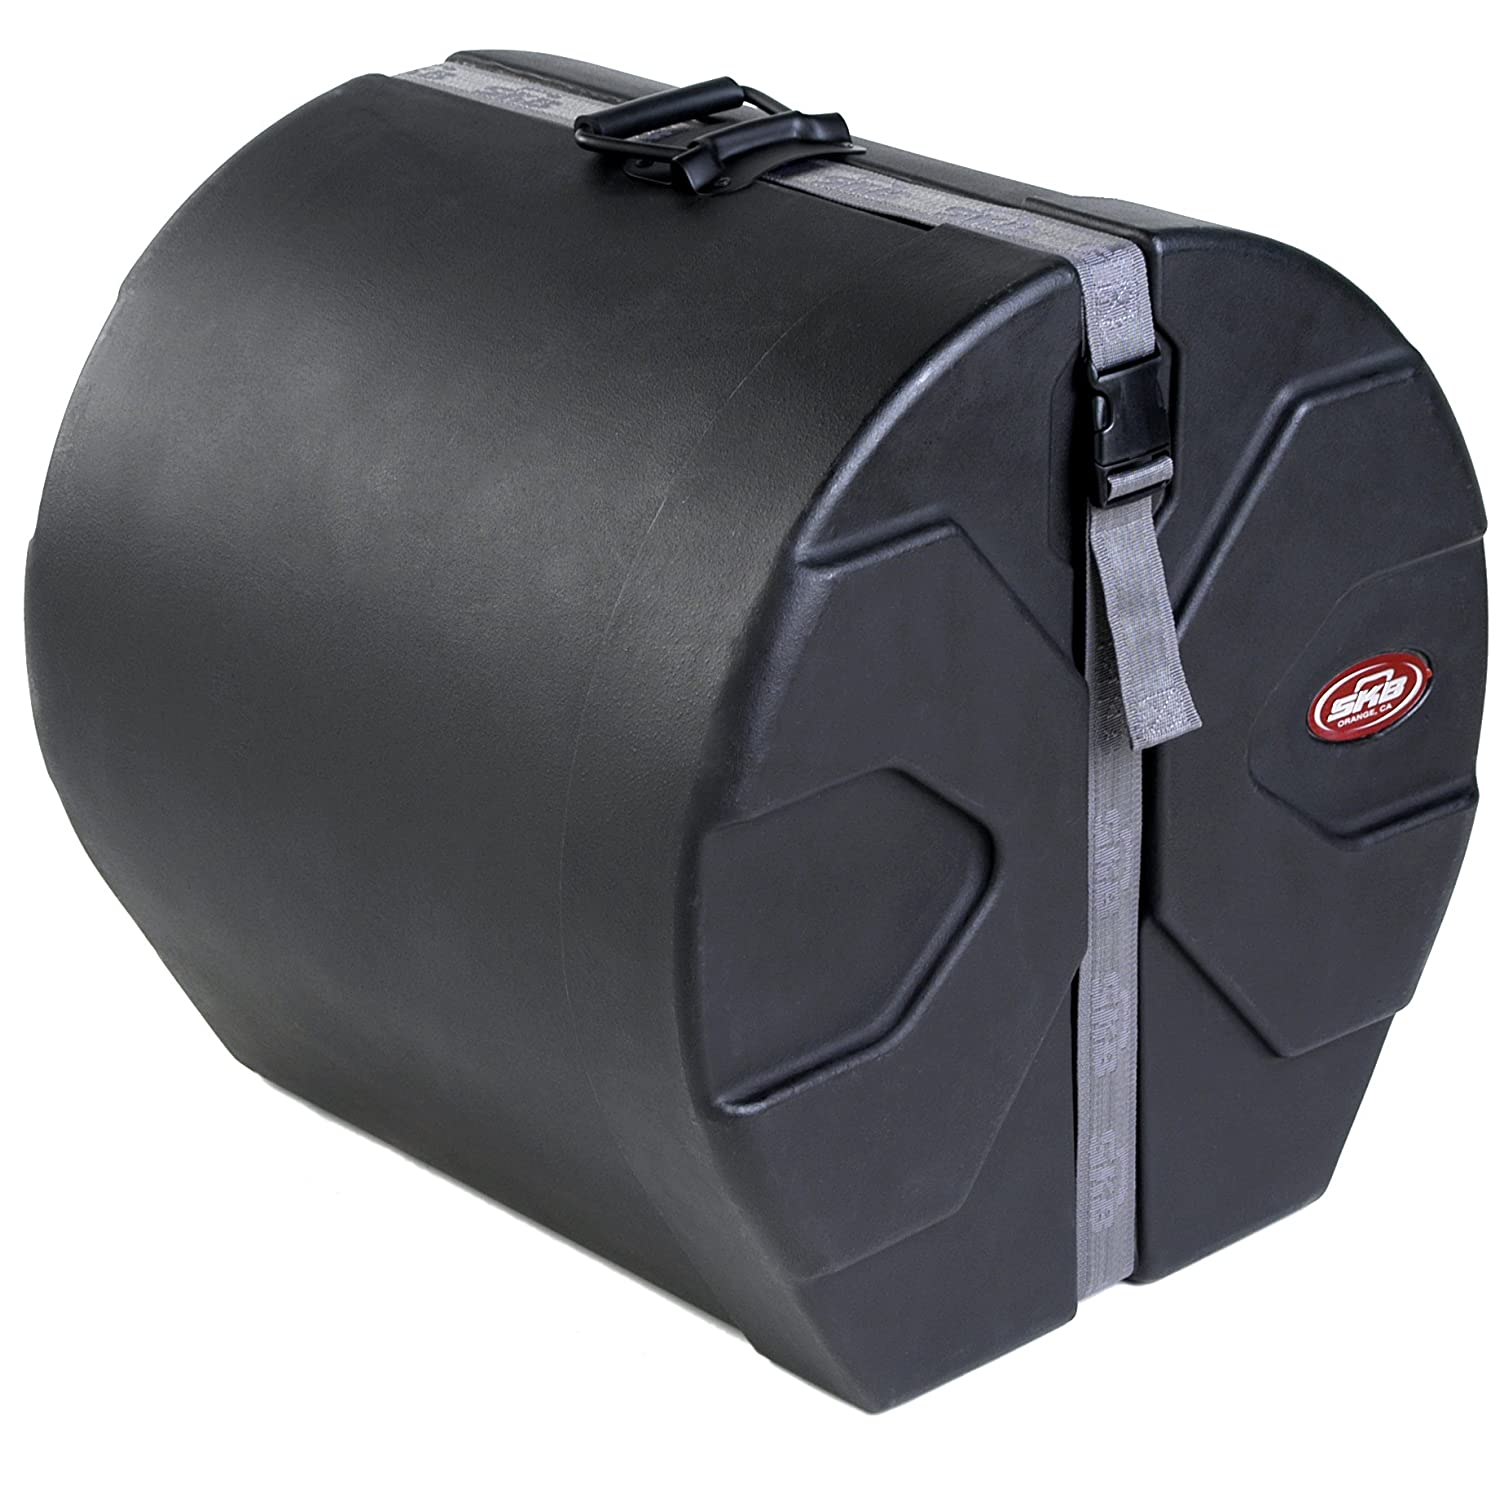 SKB 16 X 16 Floor Tom Case with Padded Interior D1616